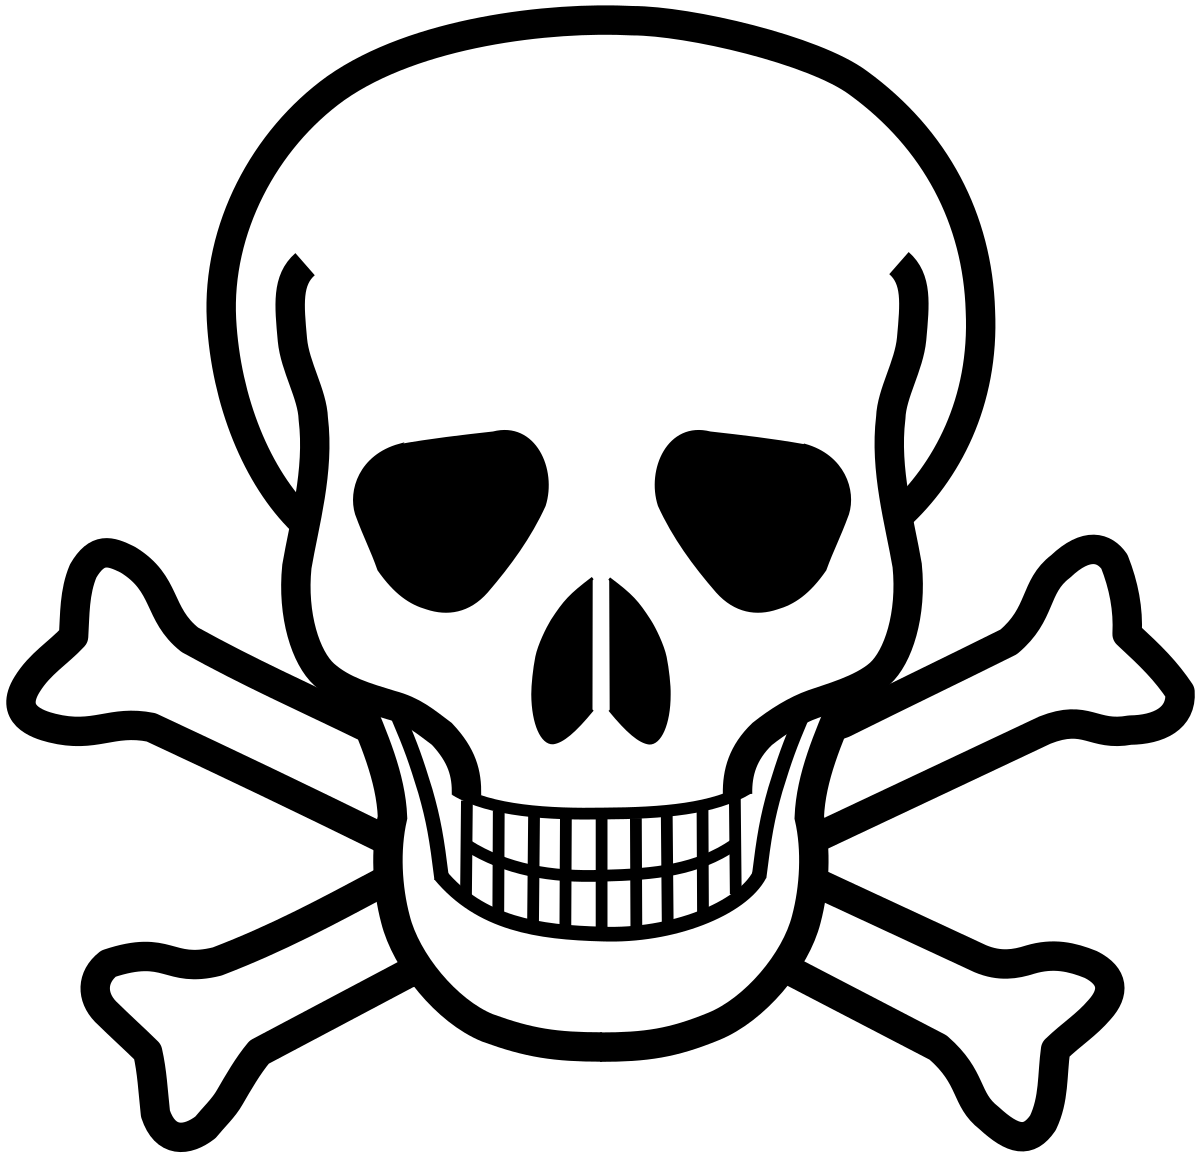 Disease clipart toxic waste. Toxicity wikipedia